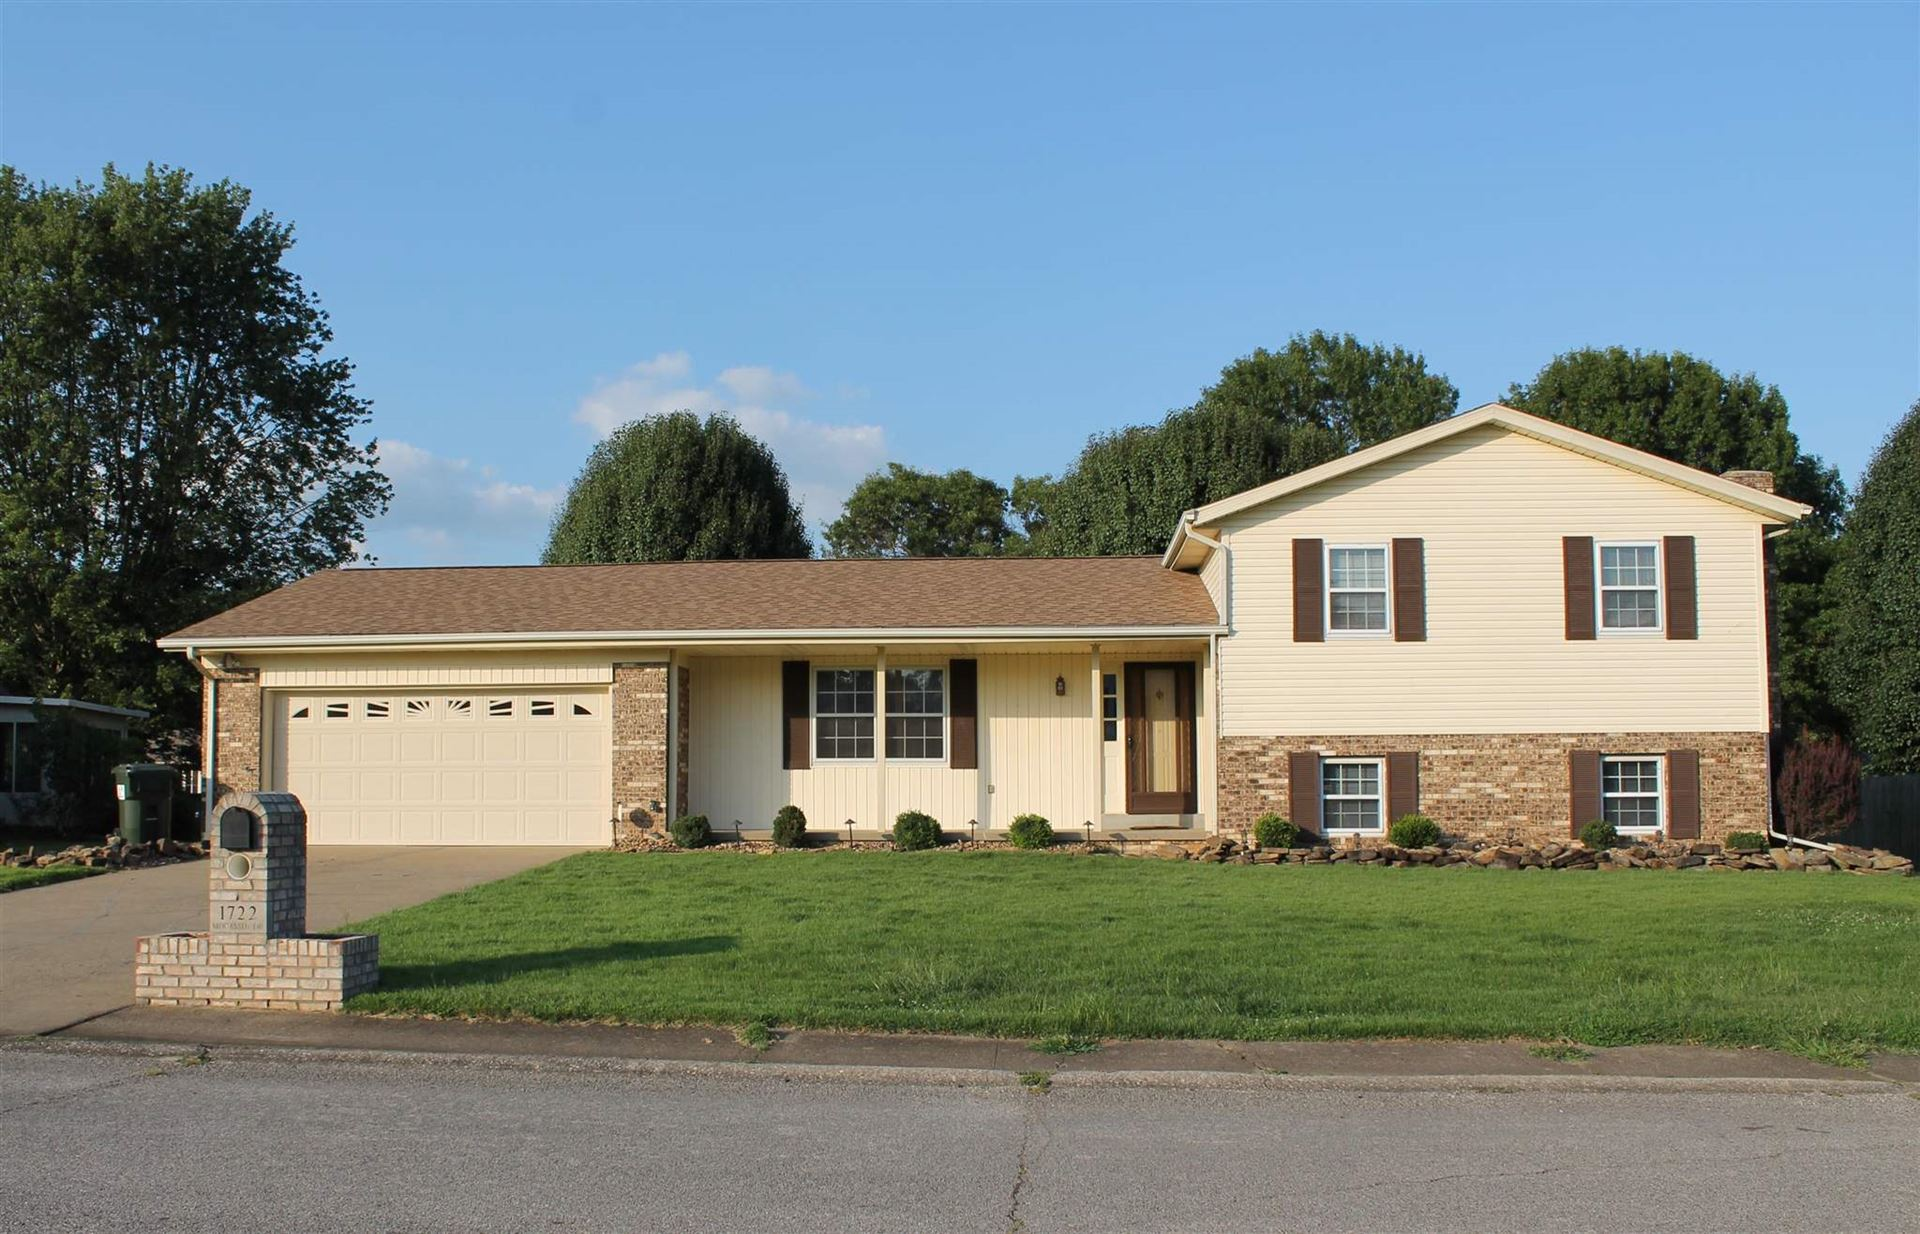 1722 Moccasin Drive, Boonville, IN 47601 - MLS#: 202135076